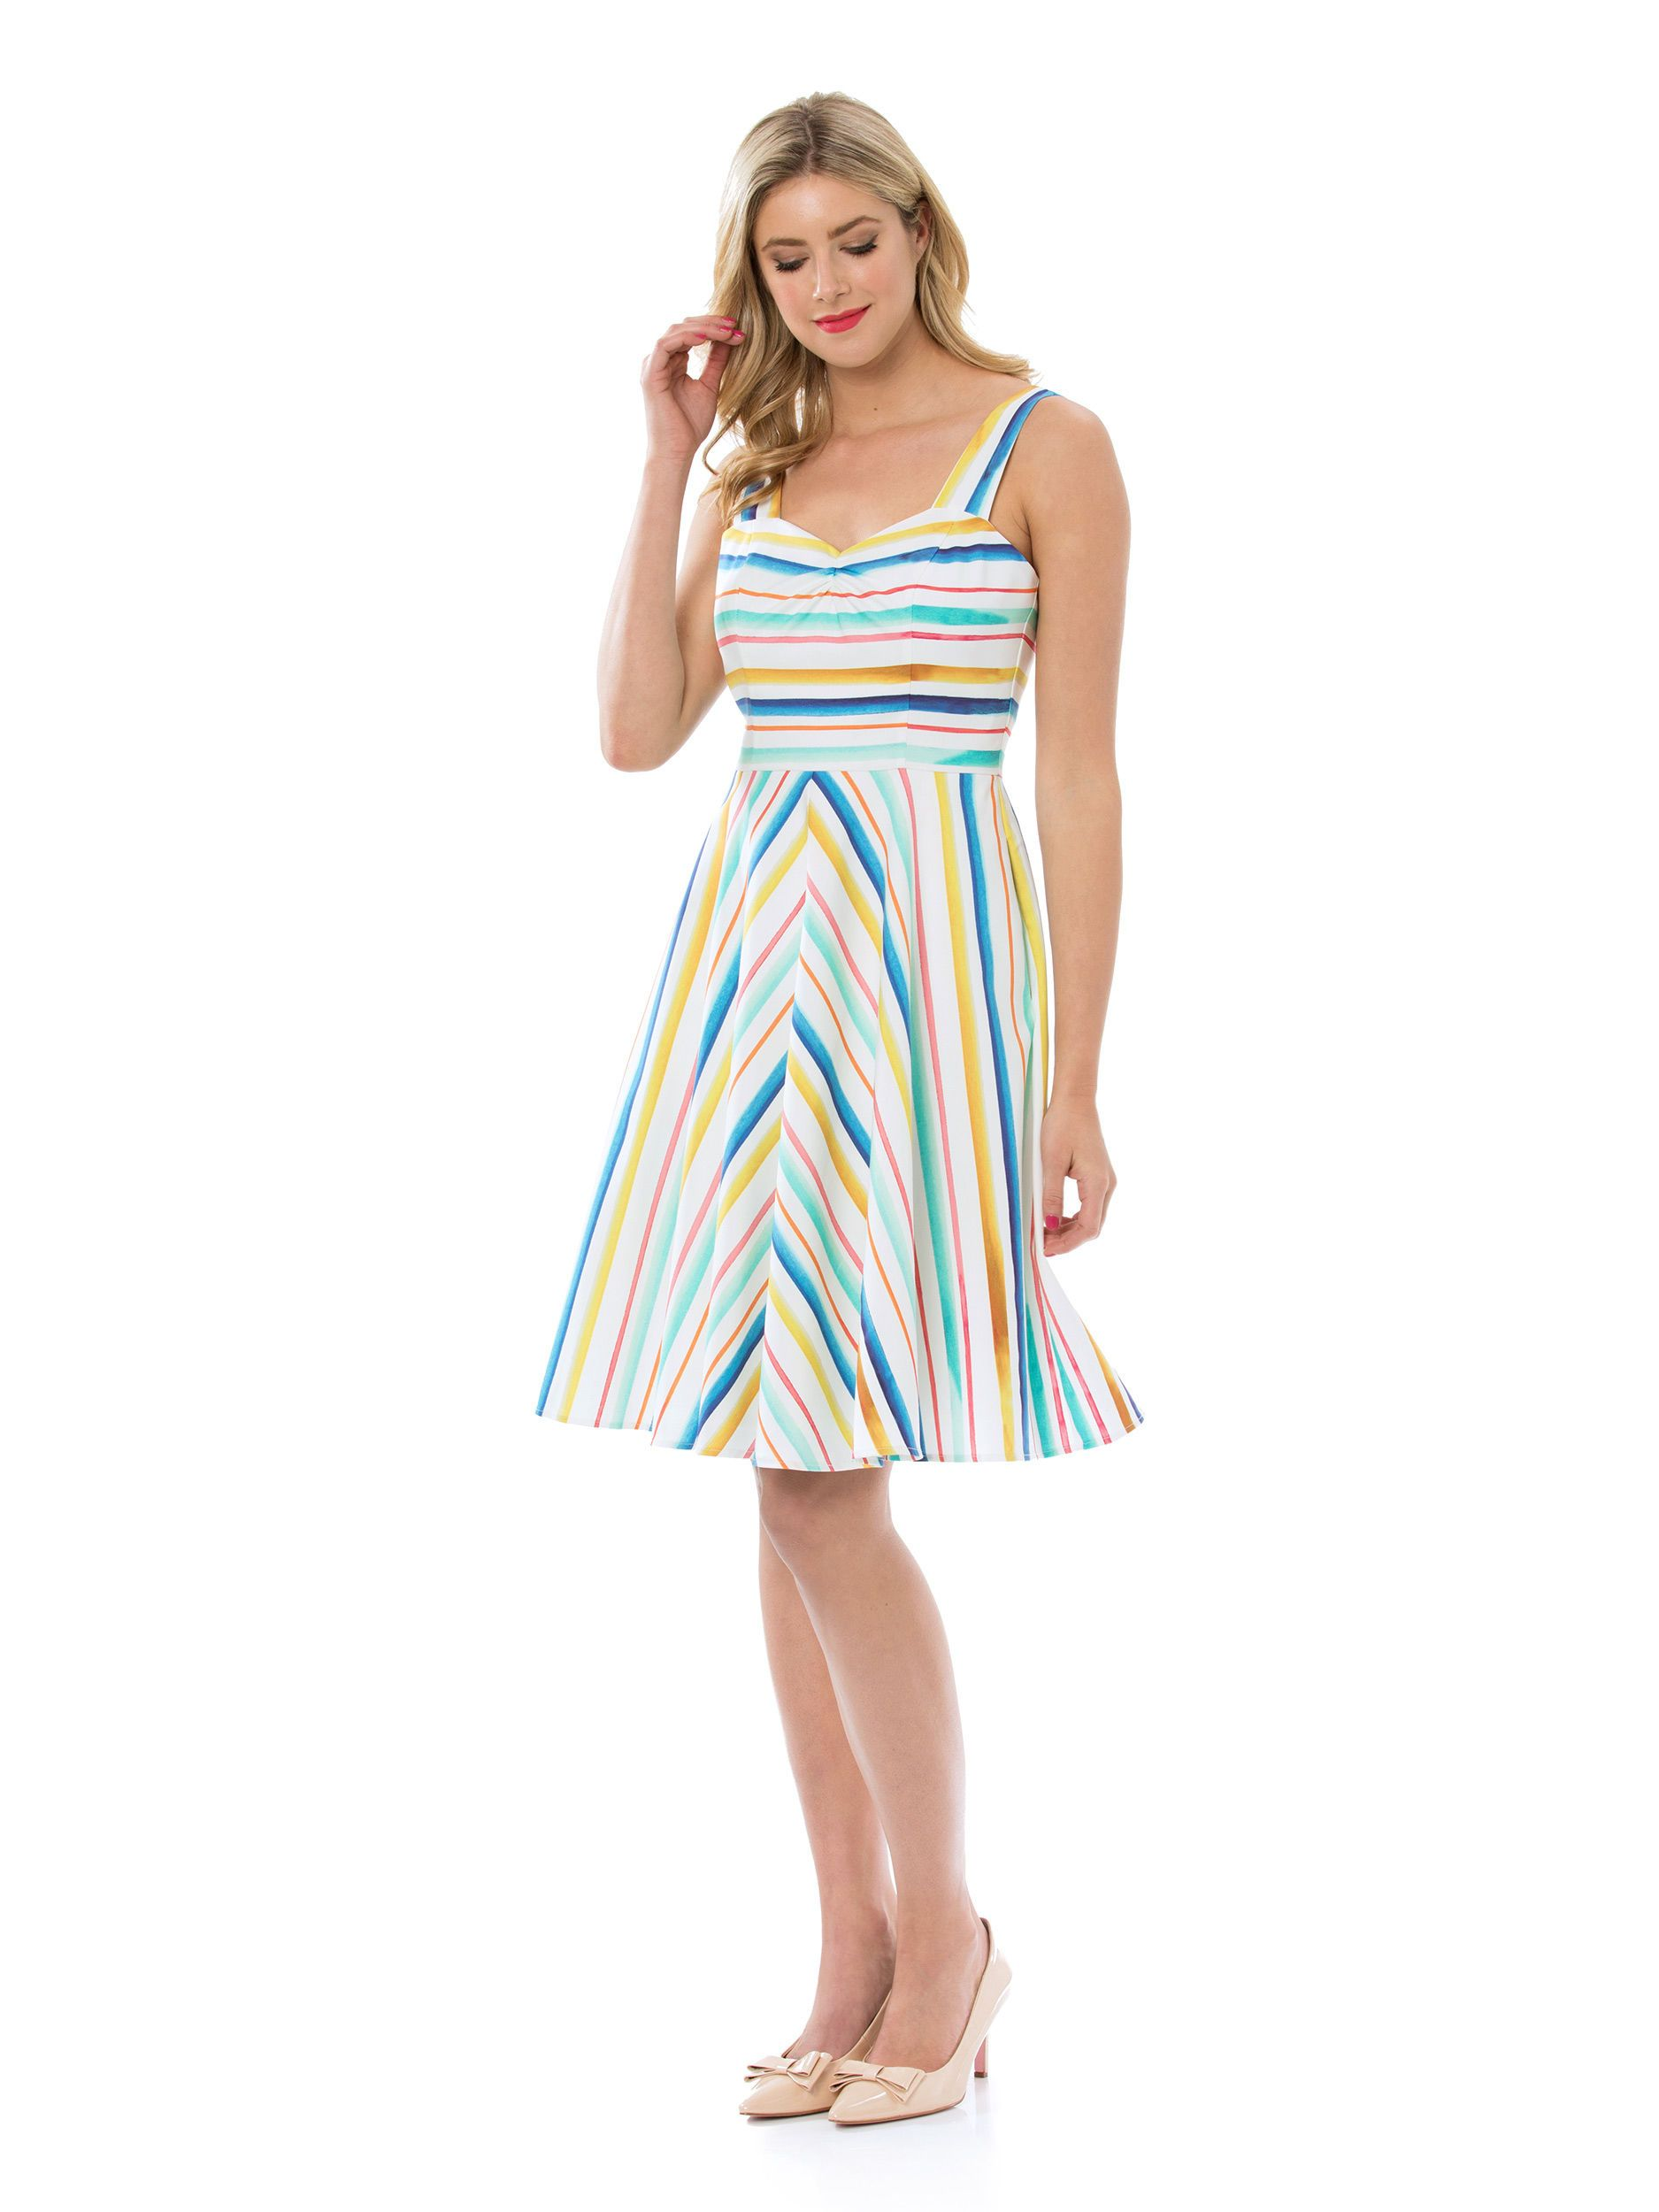 Dresses Image By Ilana Morgan On Review Australia Things I Love Summer Dresses Lily Pulitzer Dress